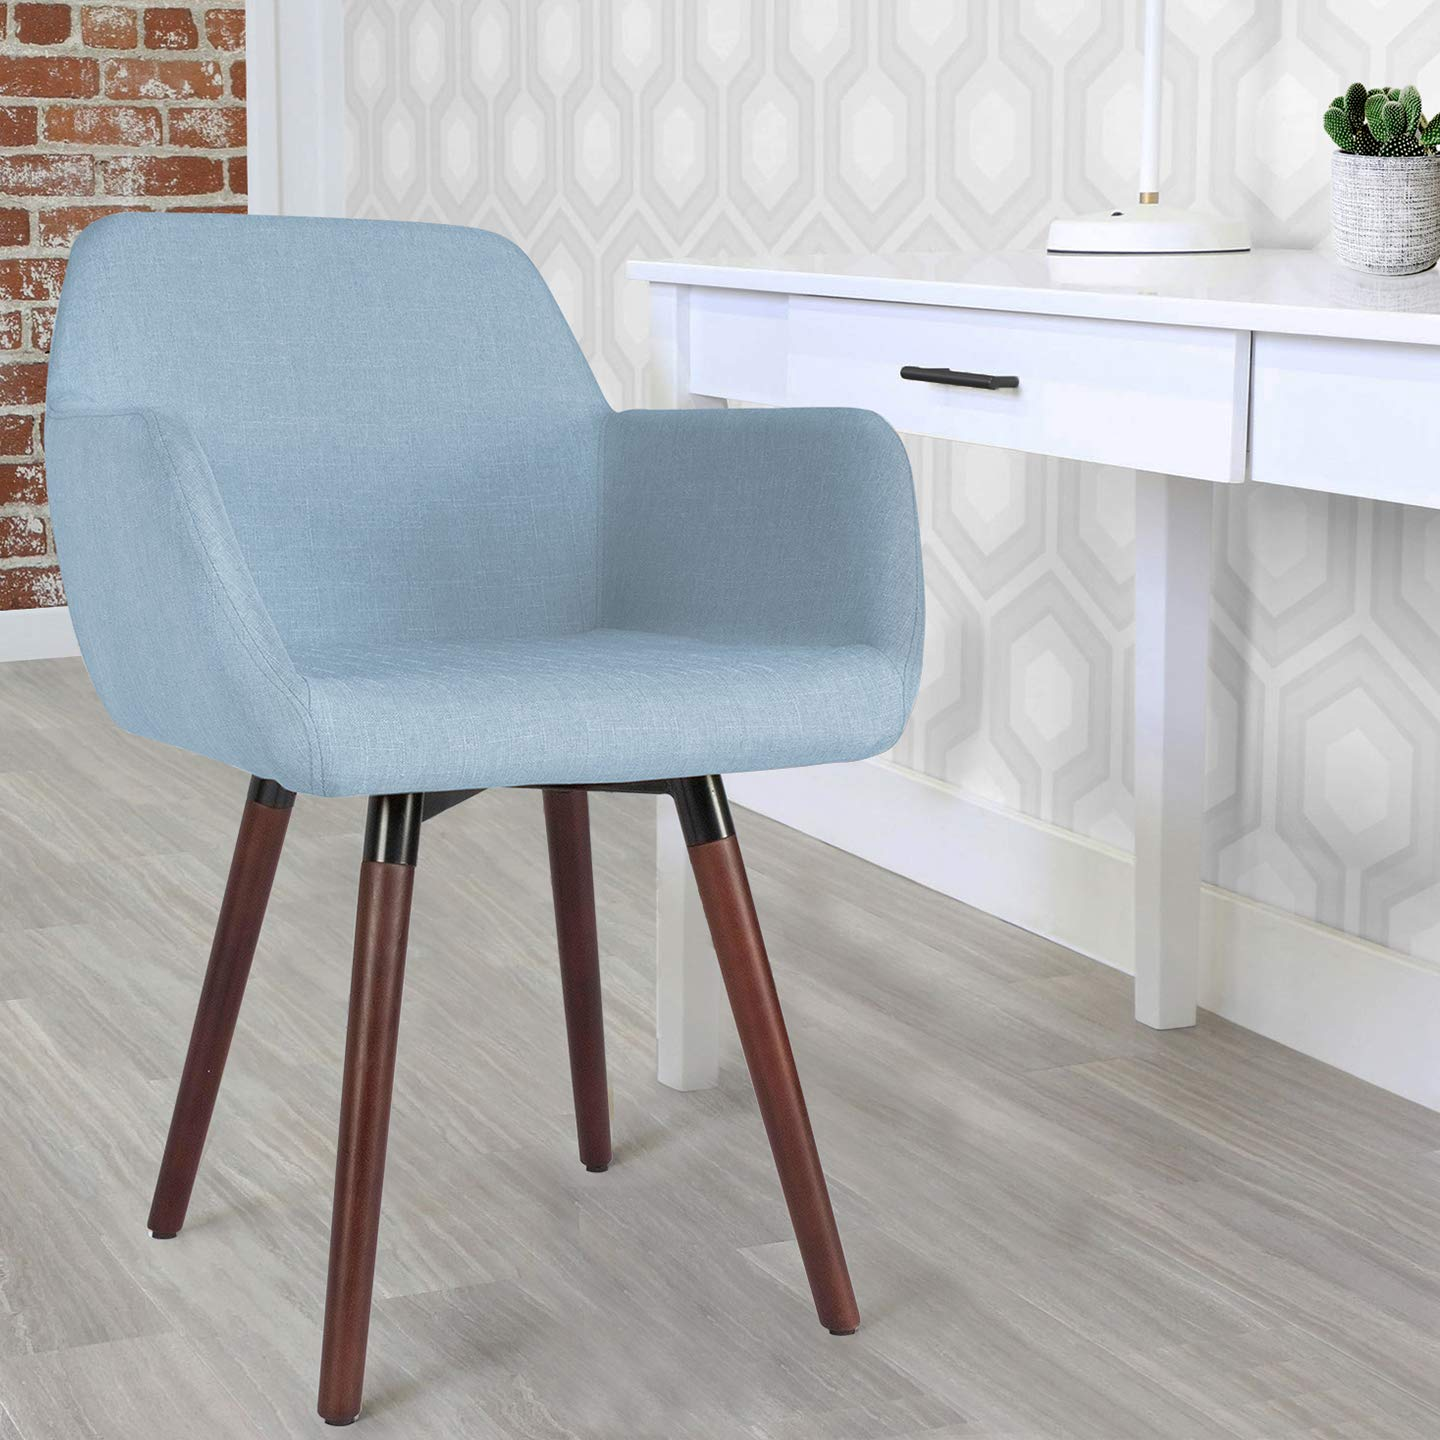 Milani Accent Chair, Contemporary Indoor Blue Upholstered Fabric Dining Arm Chair with Solid Wood Legs for Living Room, Dinning Room